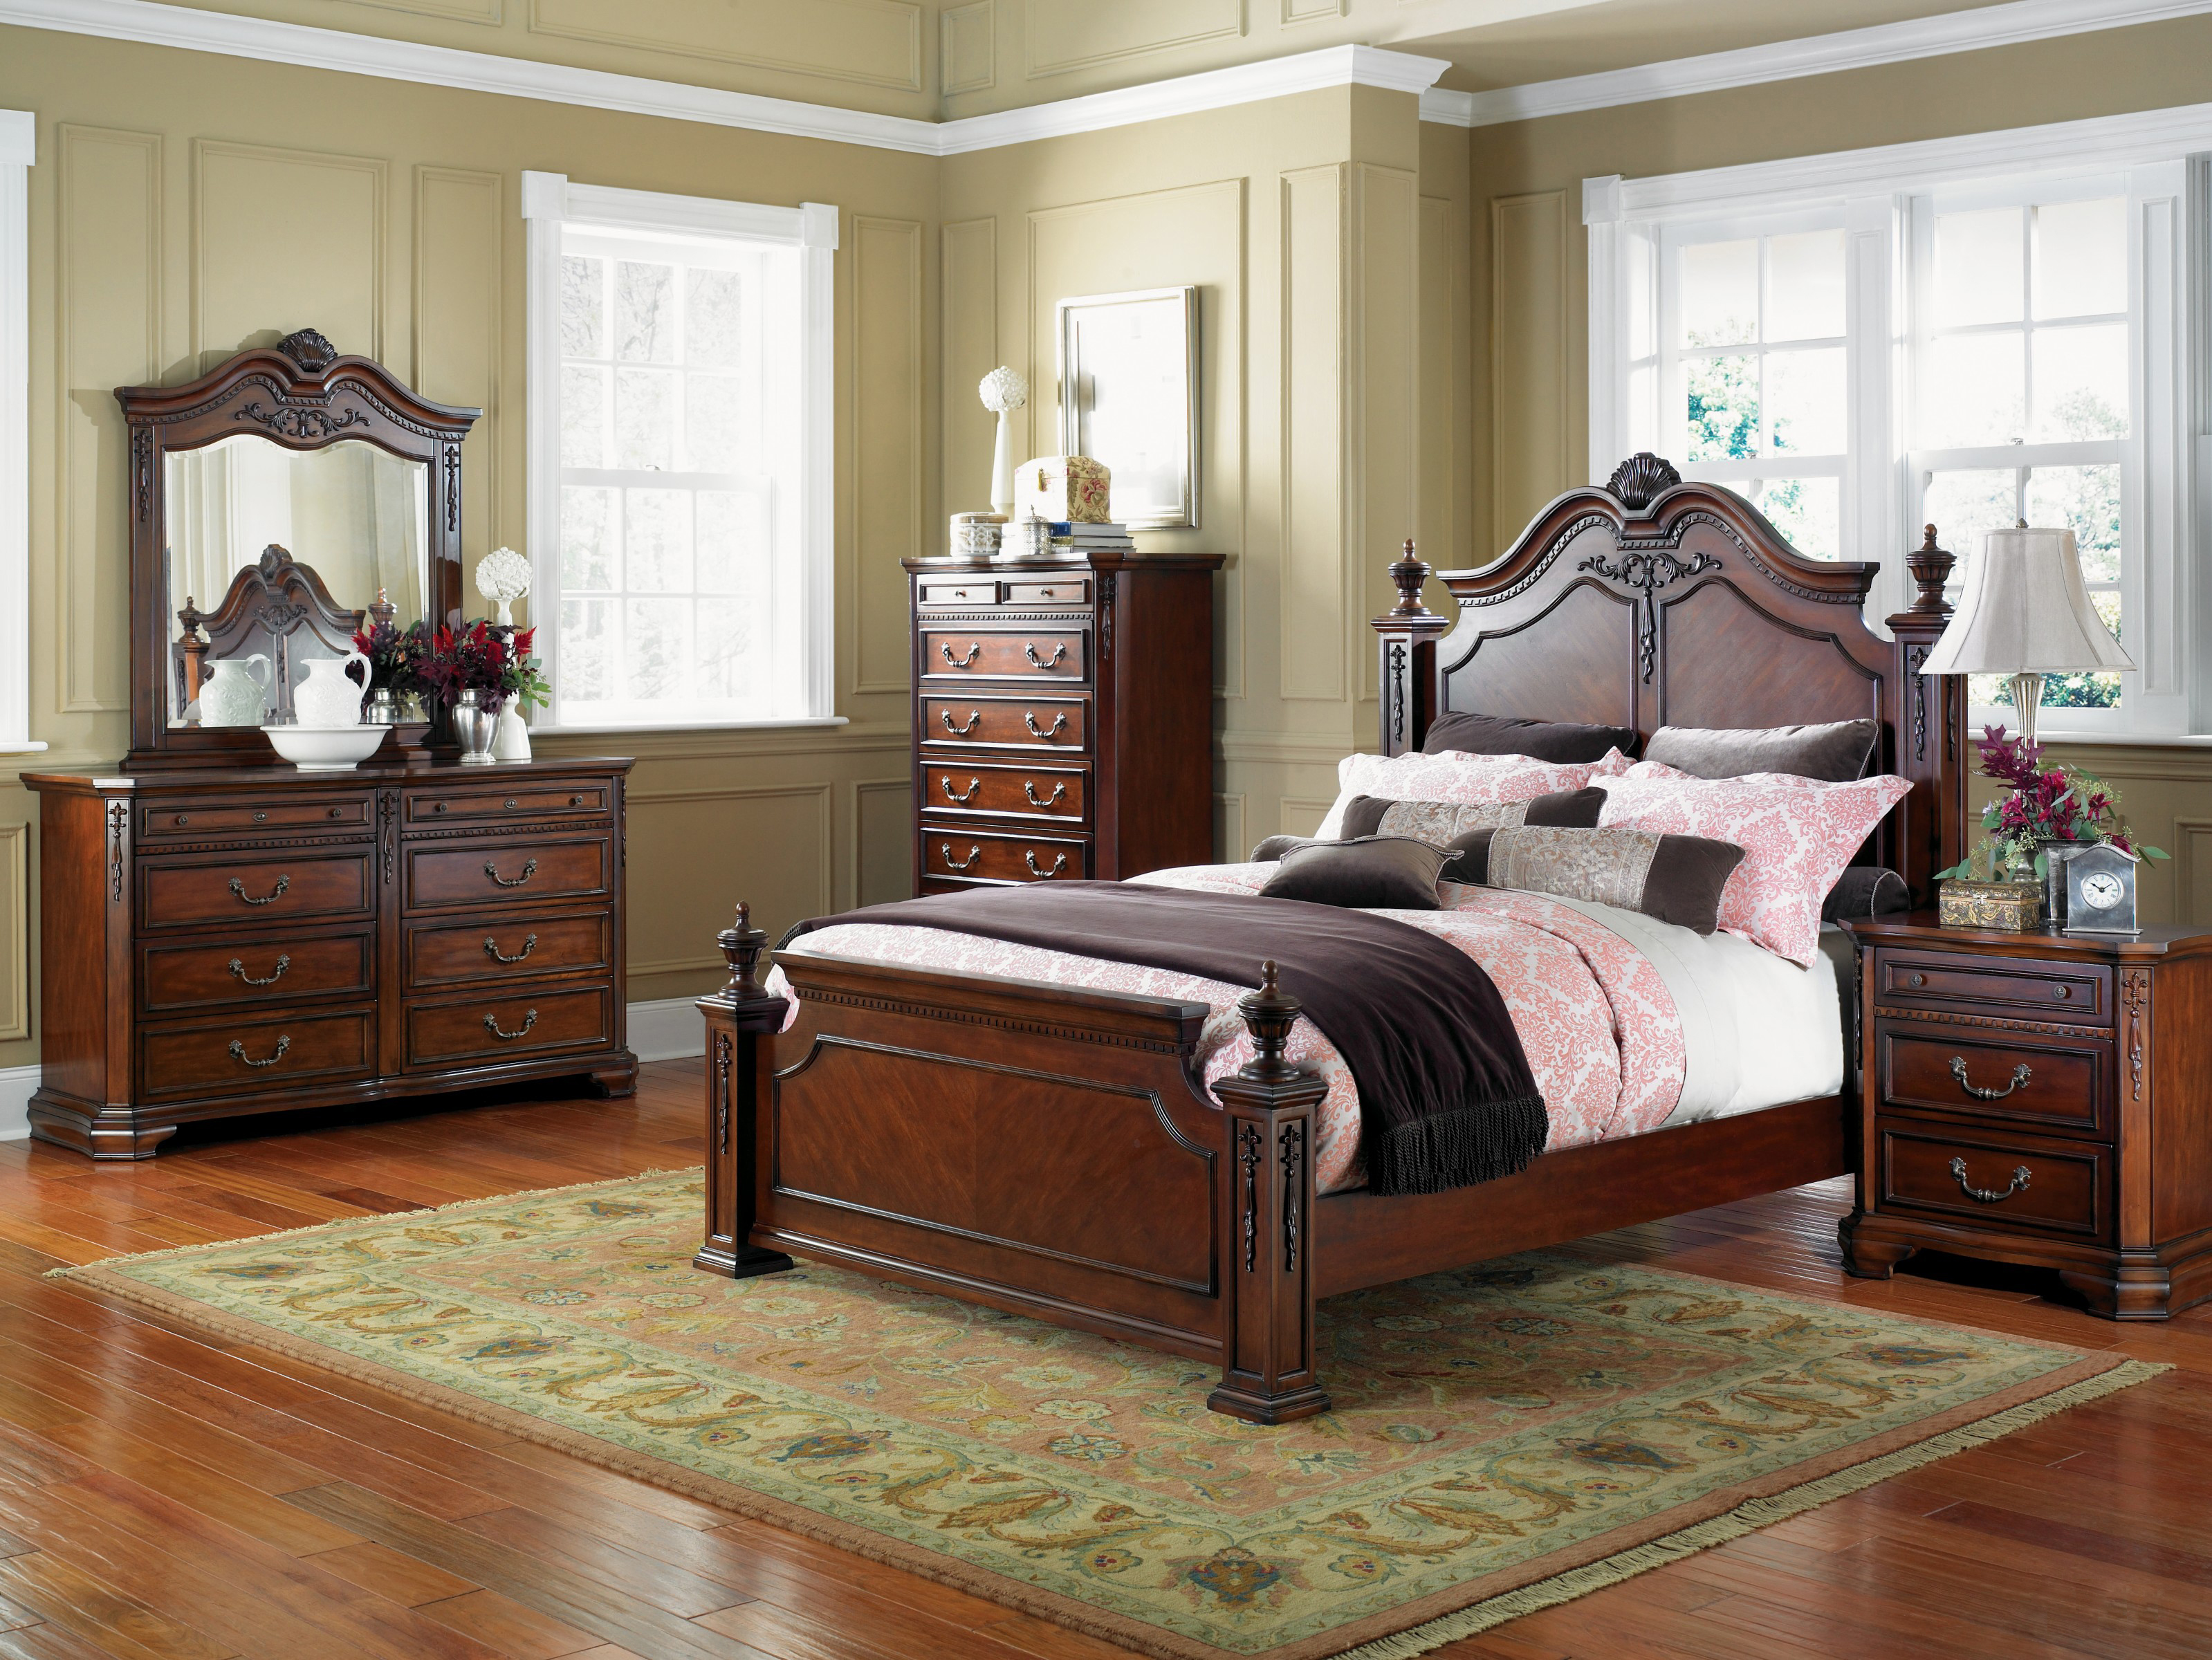 Bedroom furniture for Furniture bed design